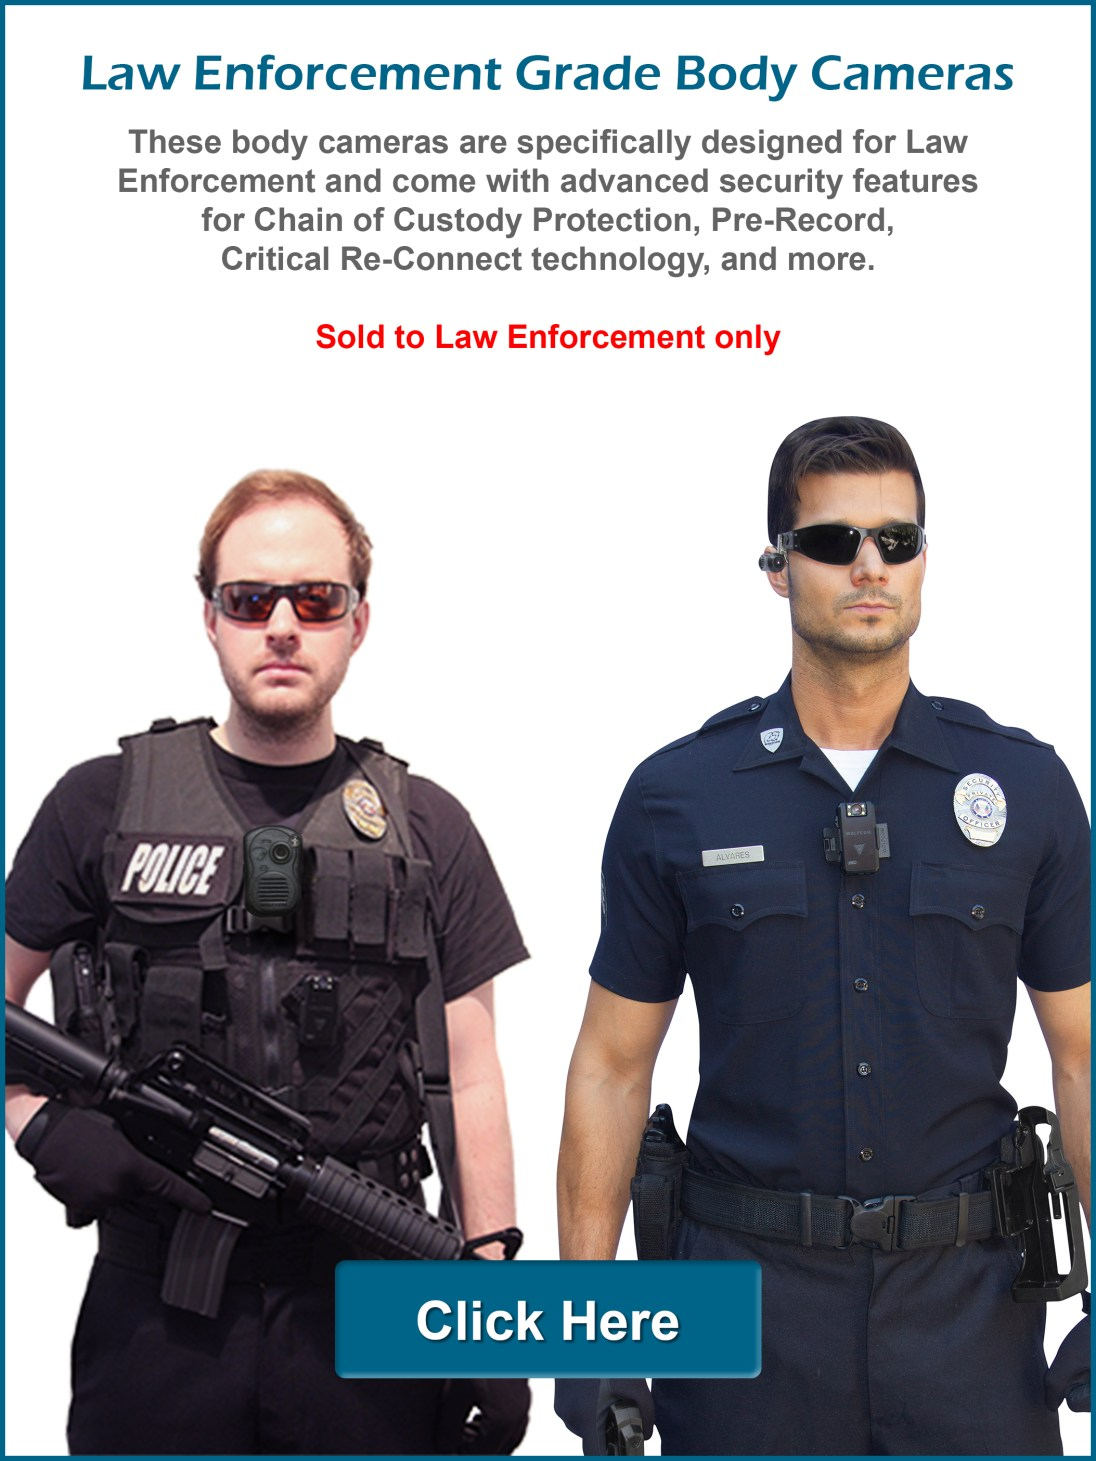 wolfcom specializes in body cameras for law enforcement